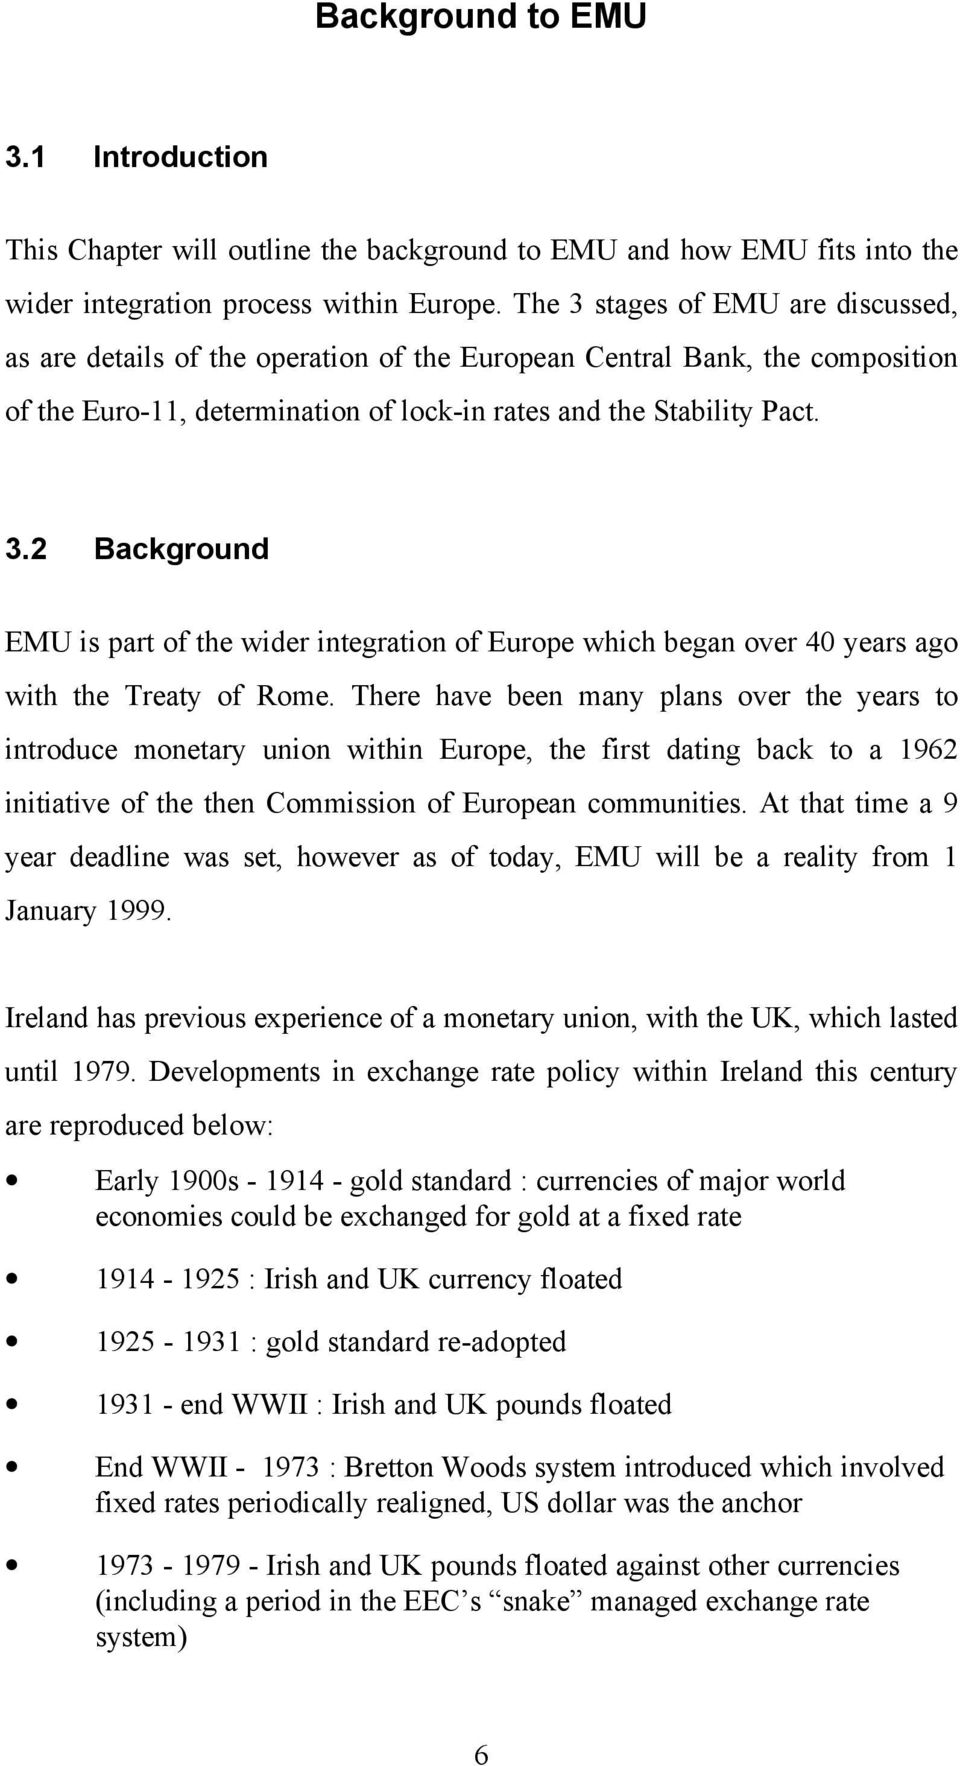 There have been many plans over the years to introduce monetary union within Europe, the first dating back to a 1962 initiative of the then Commission of European communities.